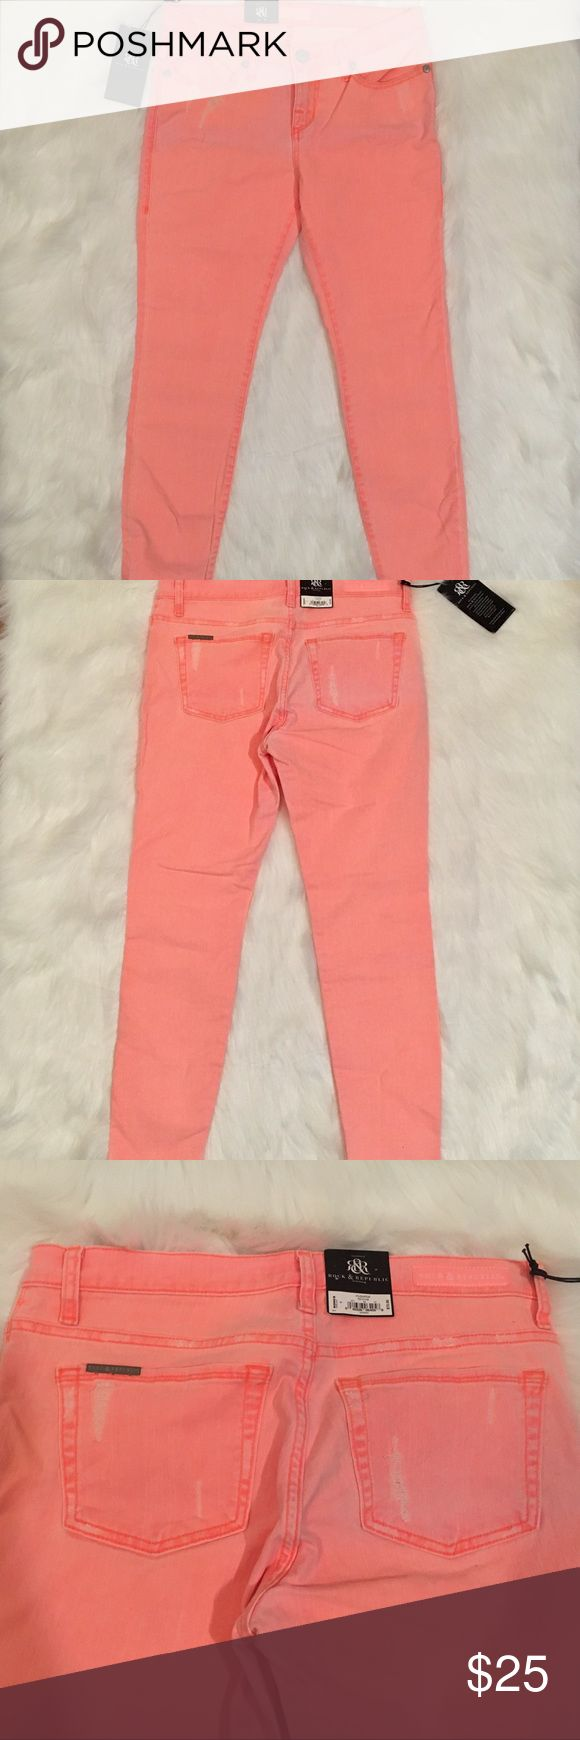 Skinny neon jeans Skinny jeans in orange 'Push pop' from Rock & Republic. Make a statement in these fun jeans! Small areas of intentional distressing. New with tags Rock & Republic Jeans Skinny